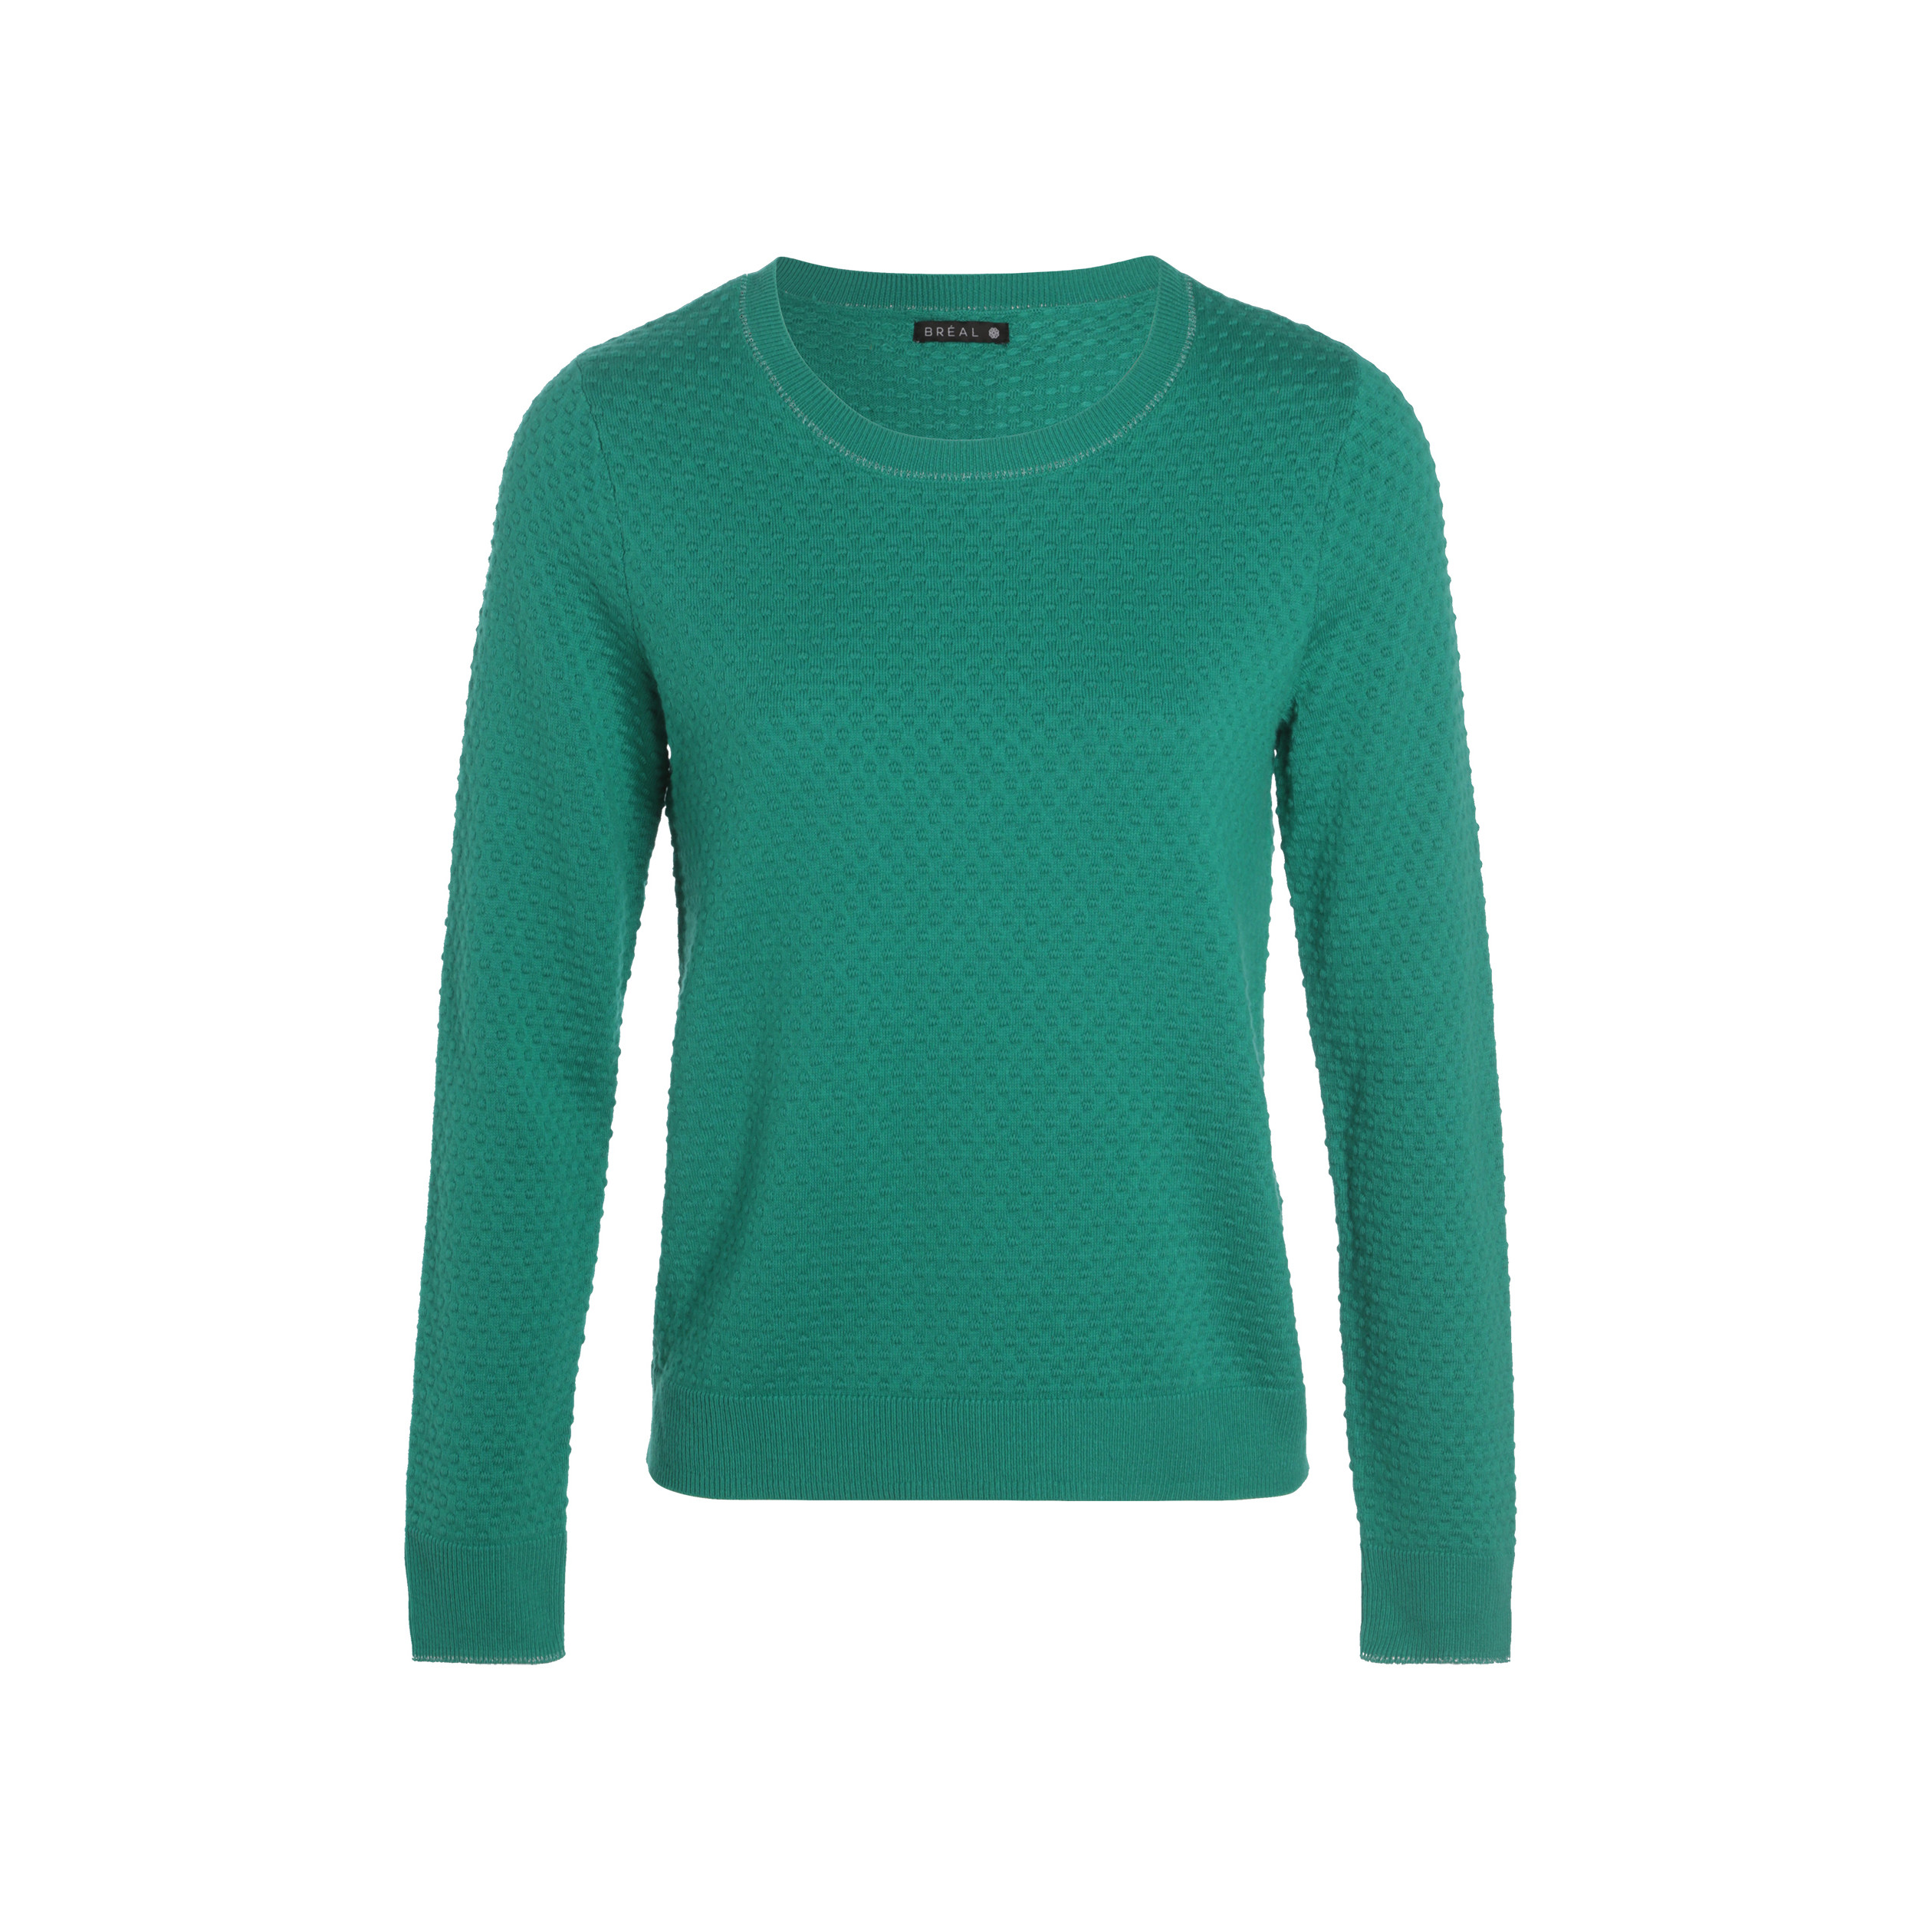 e067795ca Pull manches longues col rond vert menthe femme